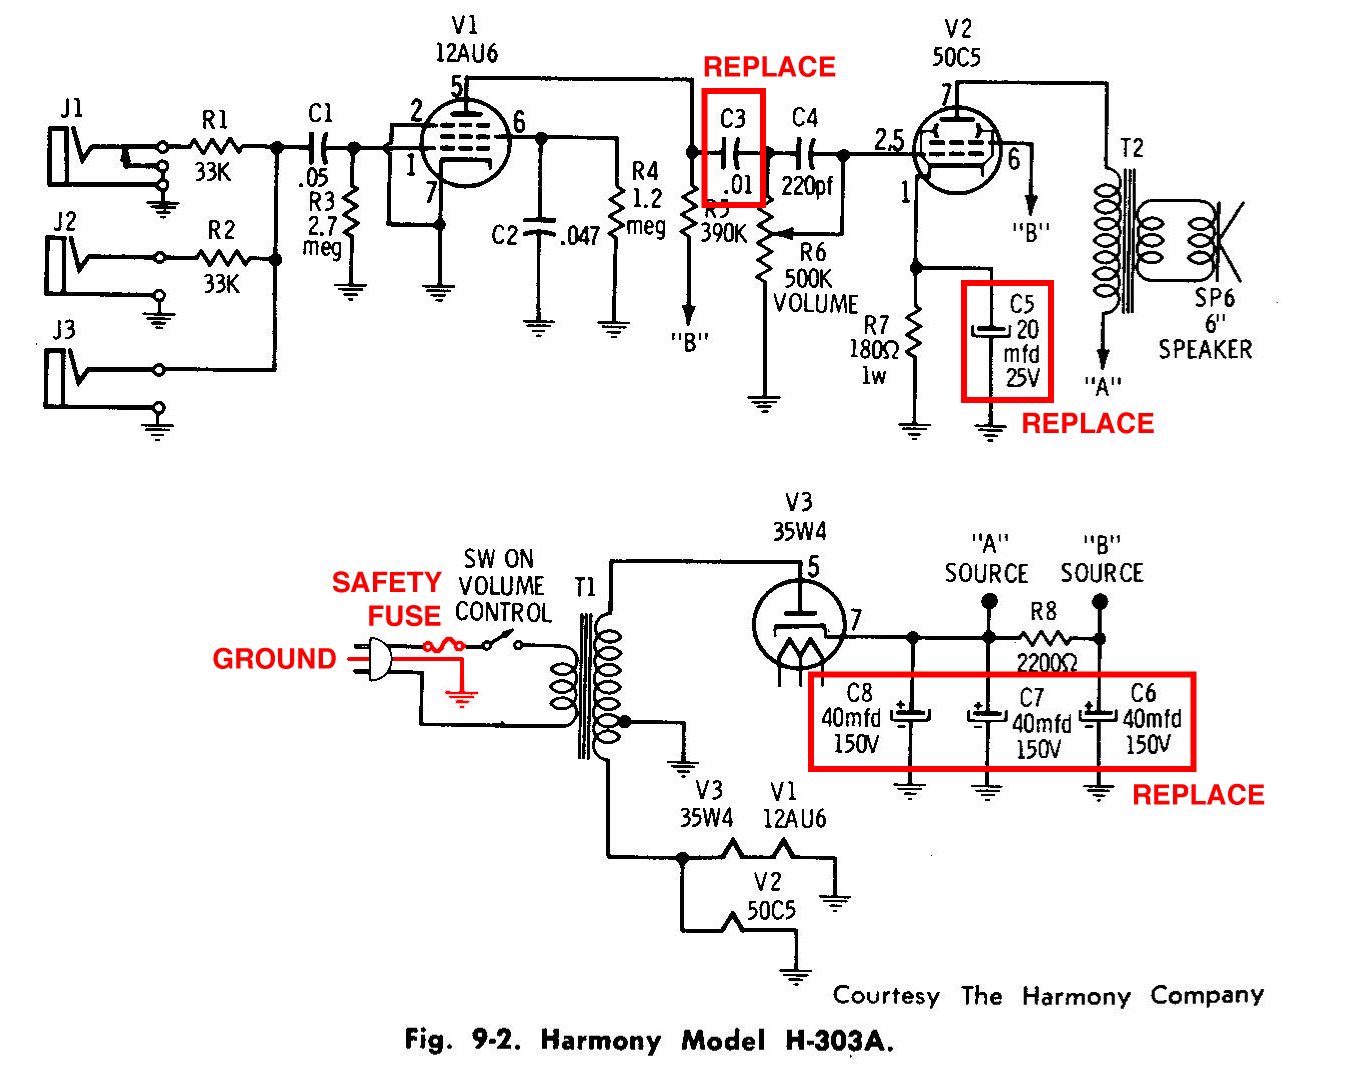 harmony h303a amplifier schematic rebuilding a vintage tube amplifier slackpropagation High-End Tube Amp Schematics at panicattacktreatment.co